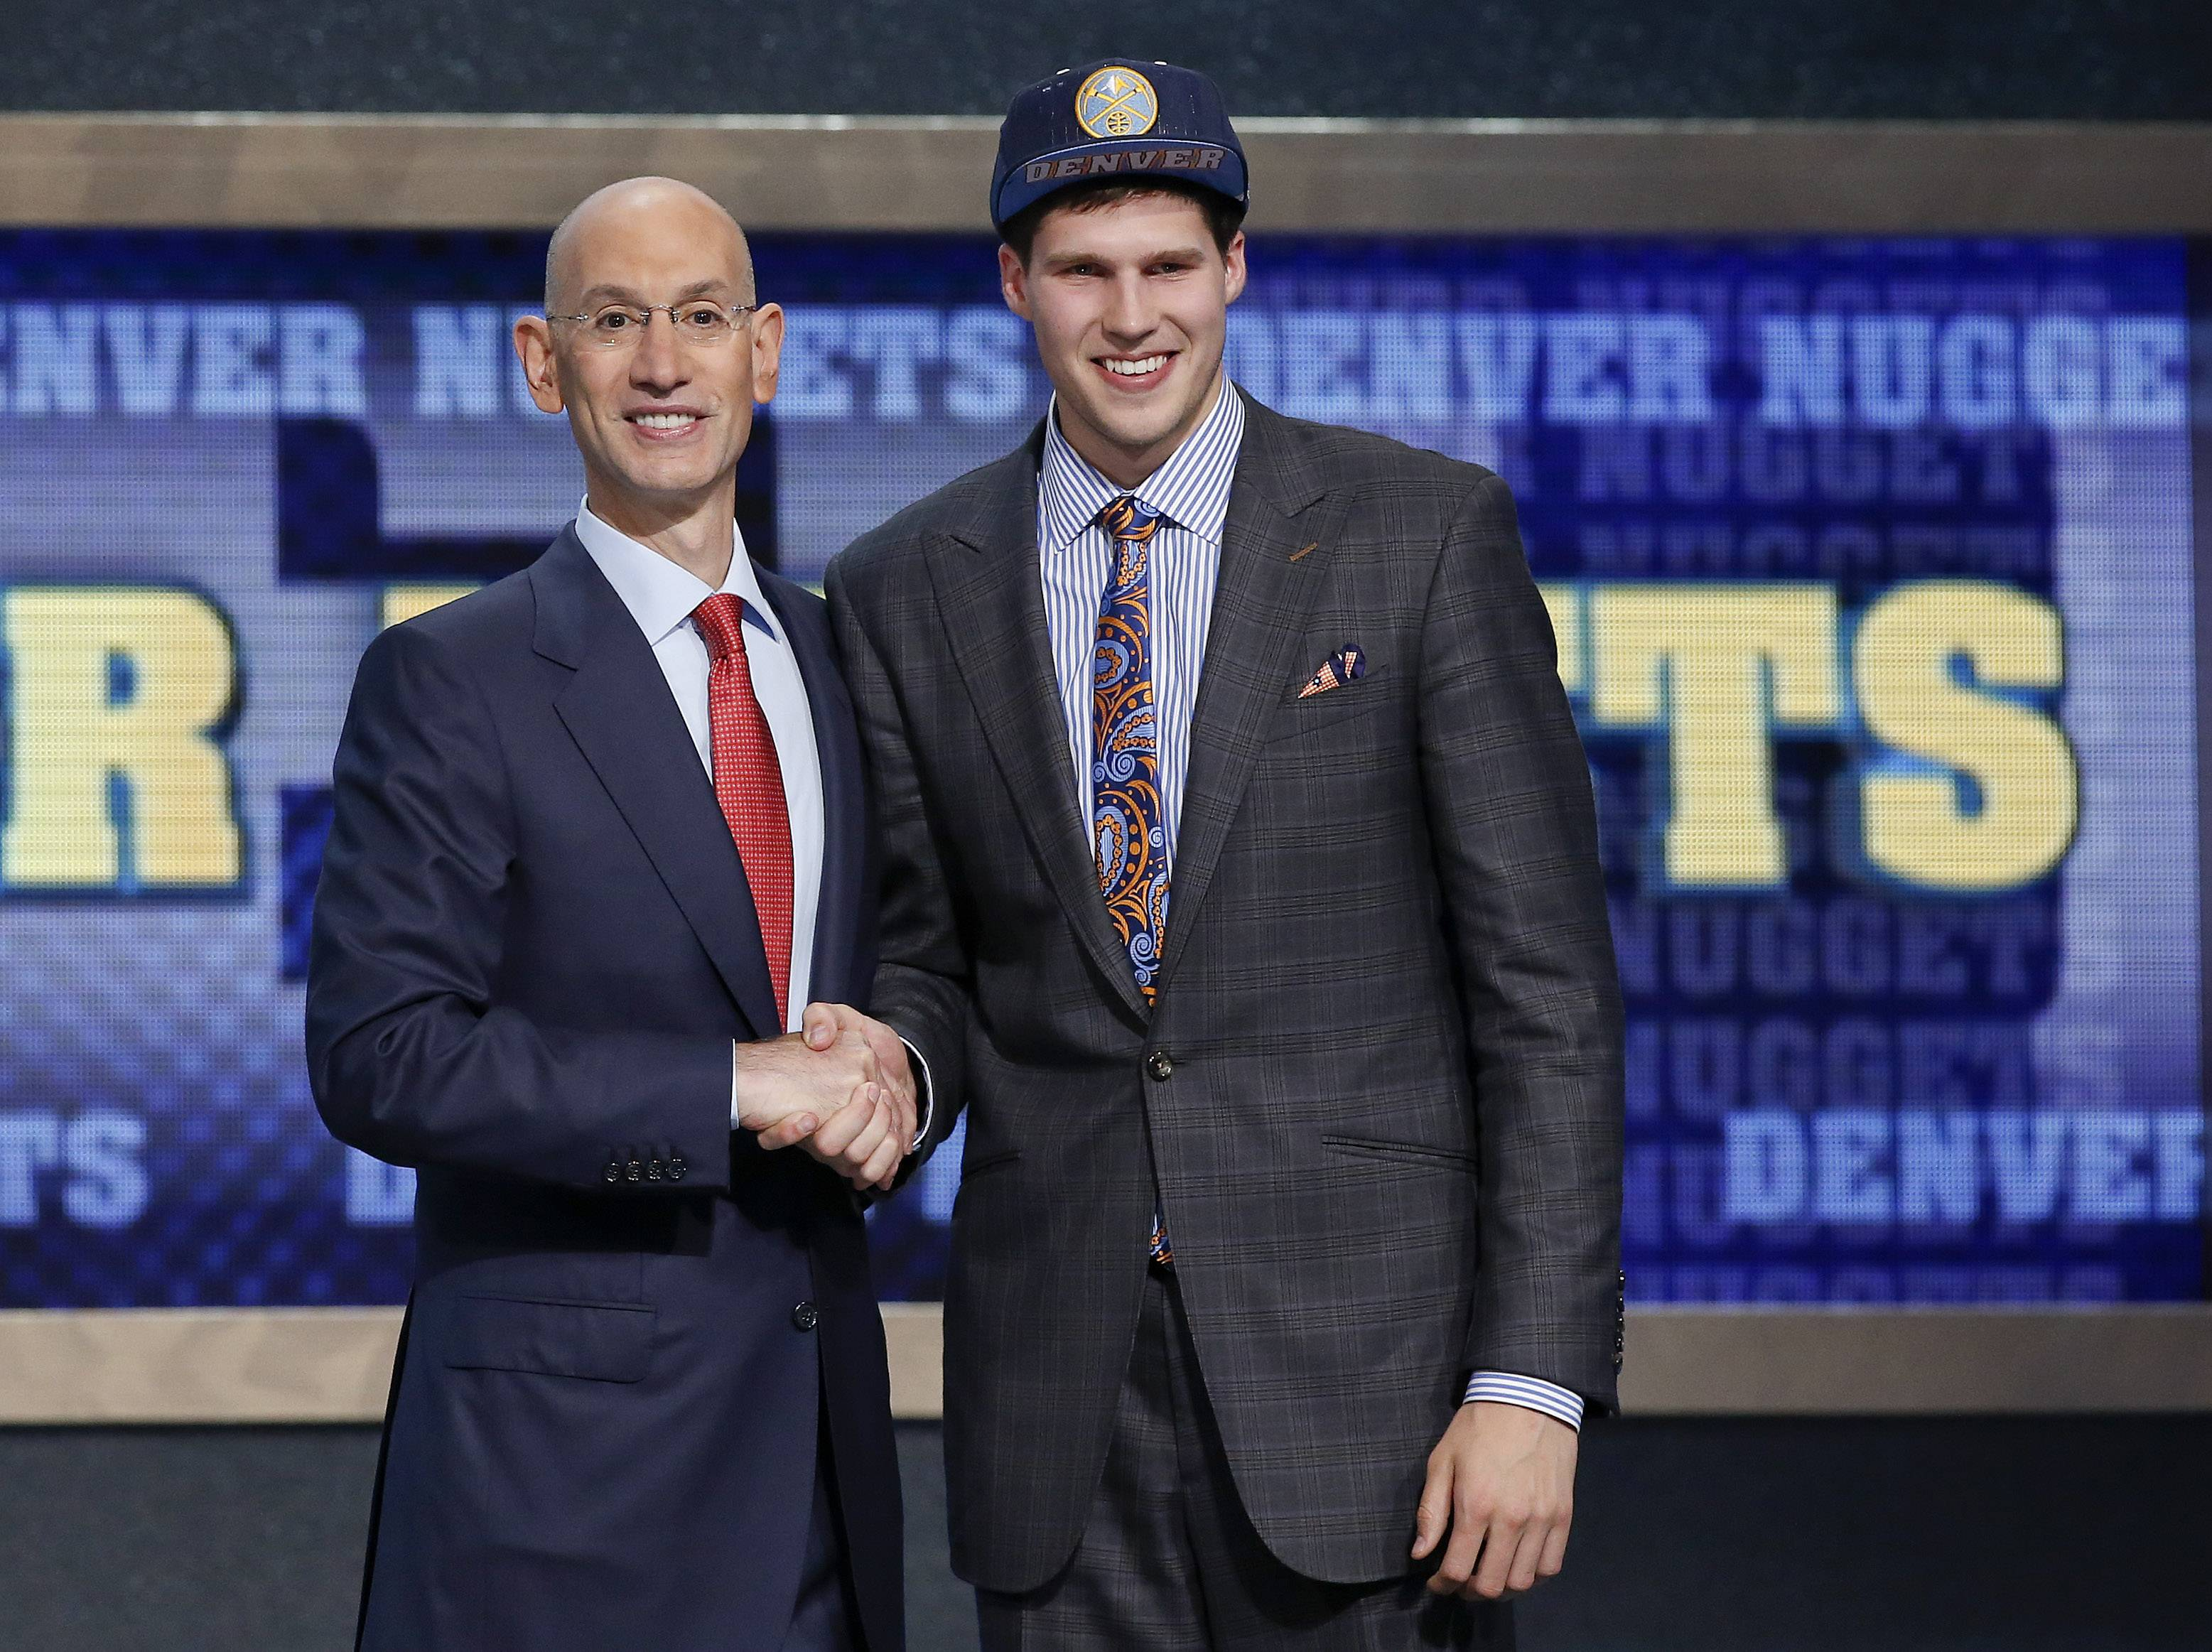 Creighton's Doug McDermott, right, poses with NBA Commissioner Adam Silver after being selected 11th overall by the Denver Nuggets on Thursday night. He then was traded to the Bulls for their two first-round picks.